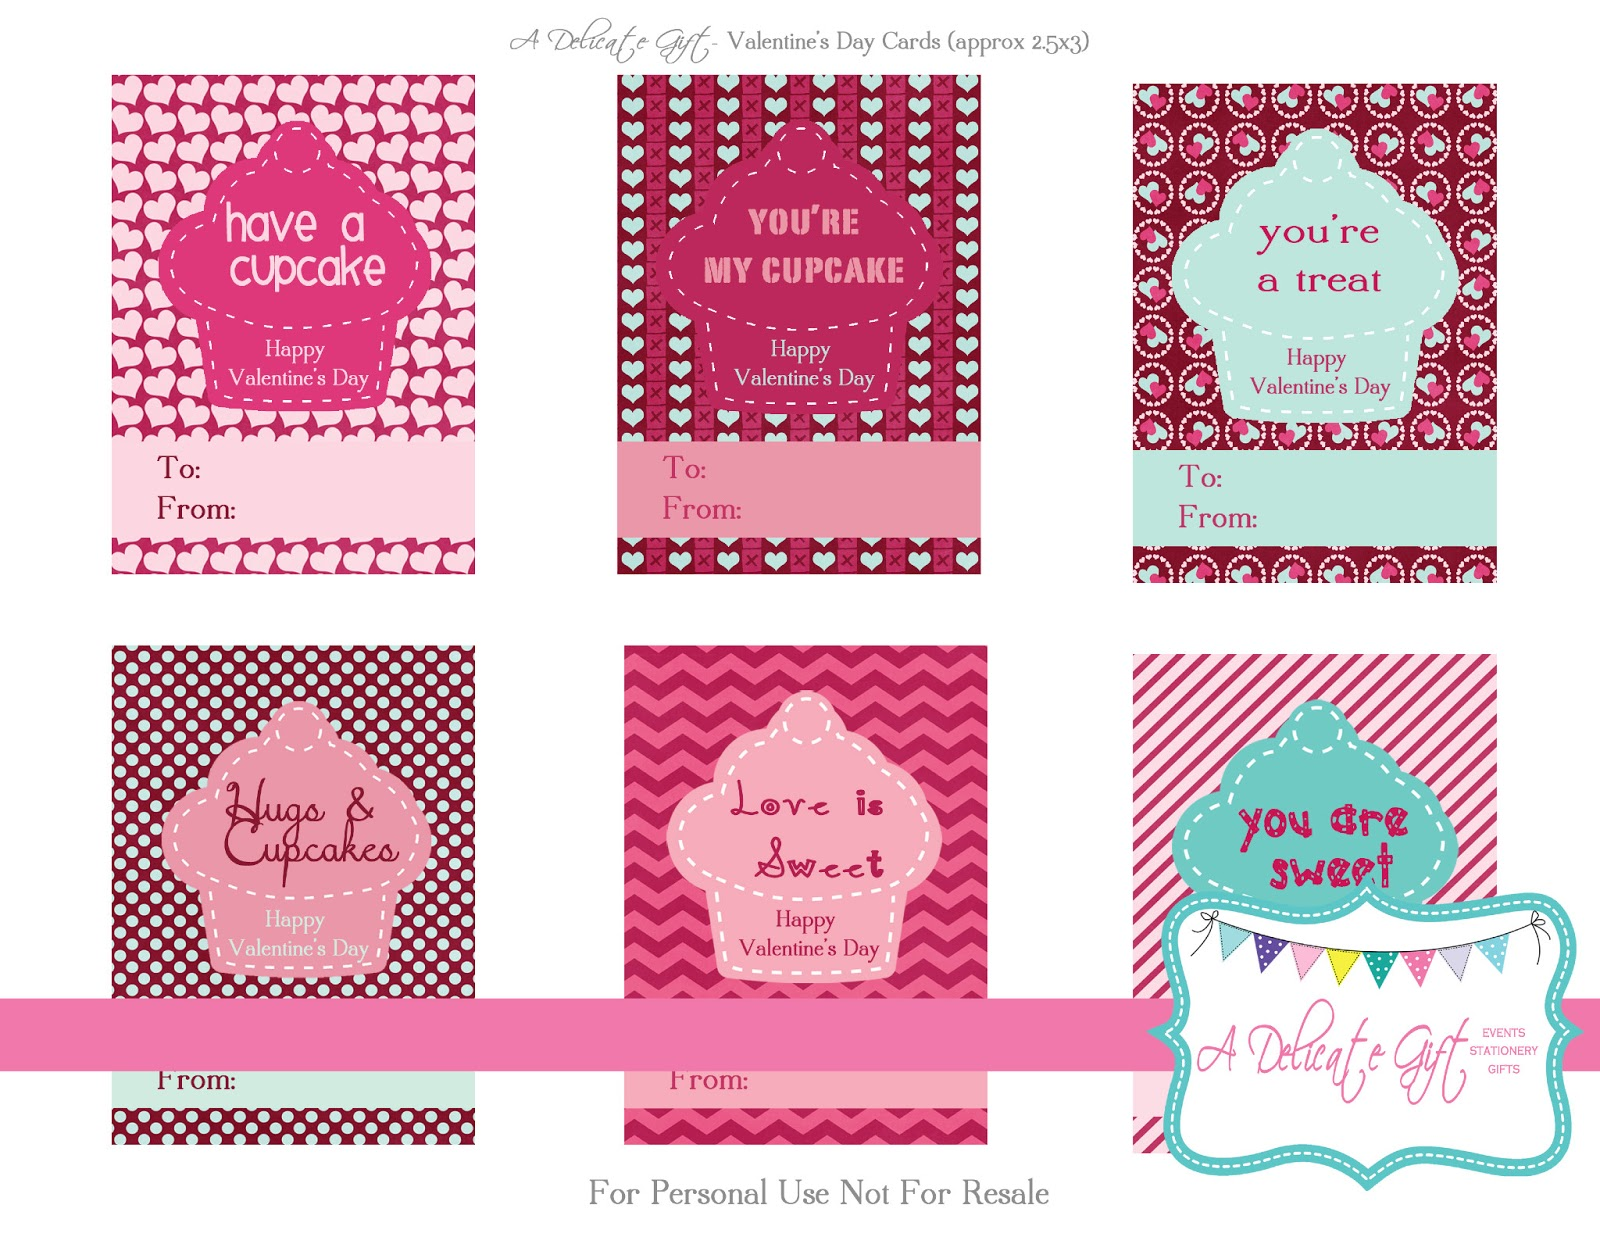 Valentines Day CardsTags FREEBIE a delicate gift – Free Printable Funny Valentines Day Cards